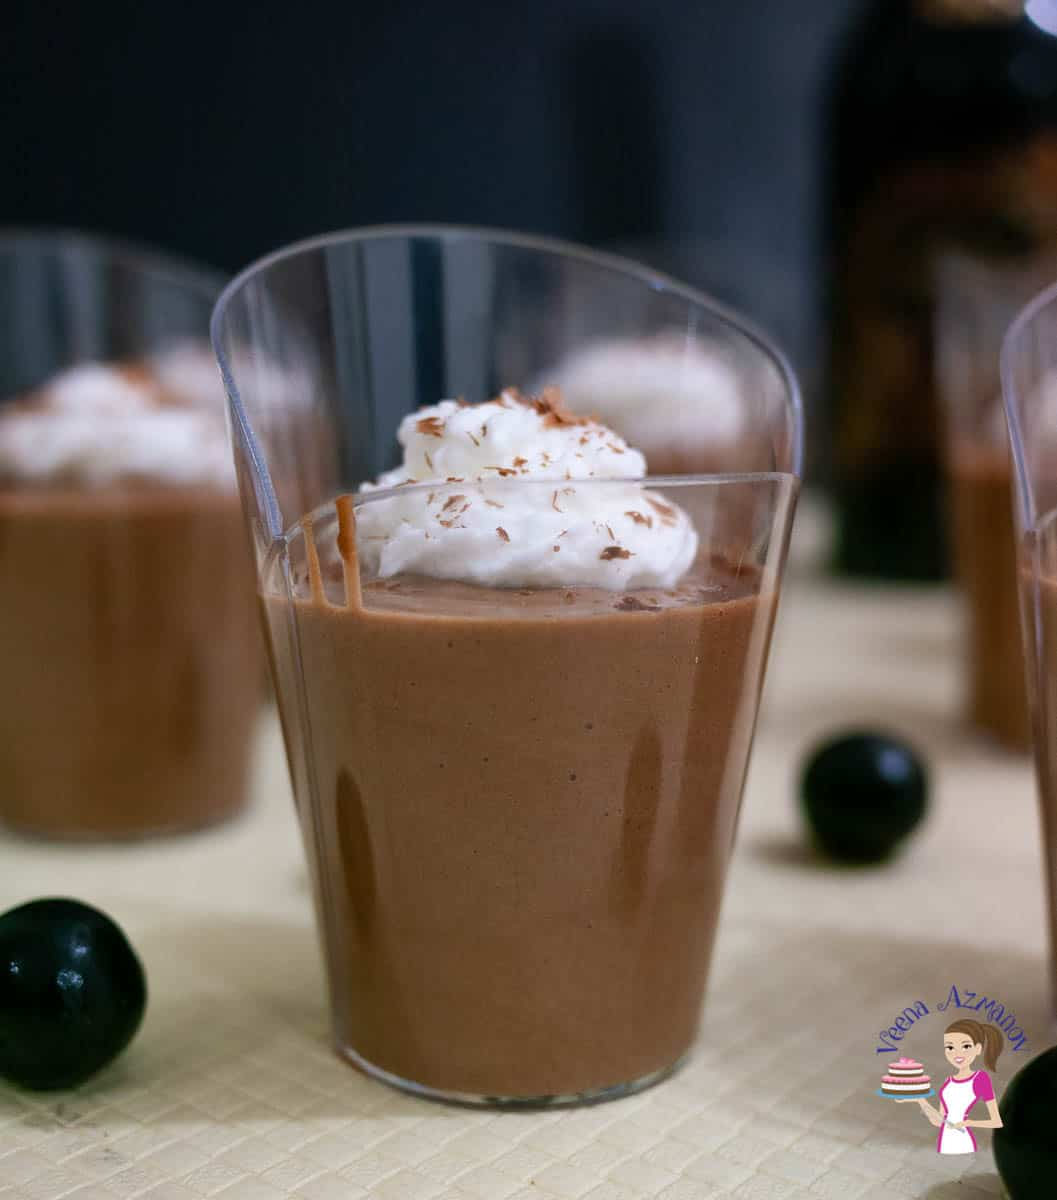 A glass with eggless chocolate mousse topped with whipped cream